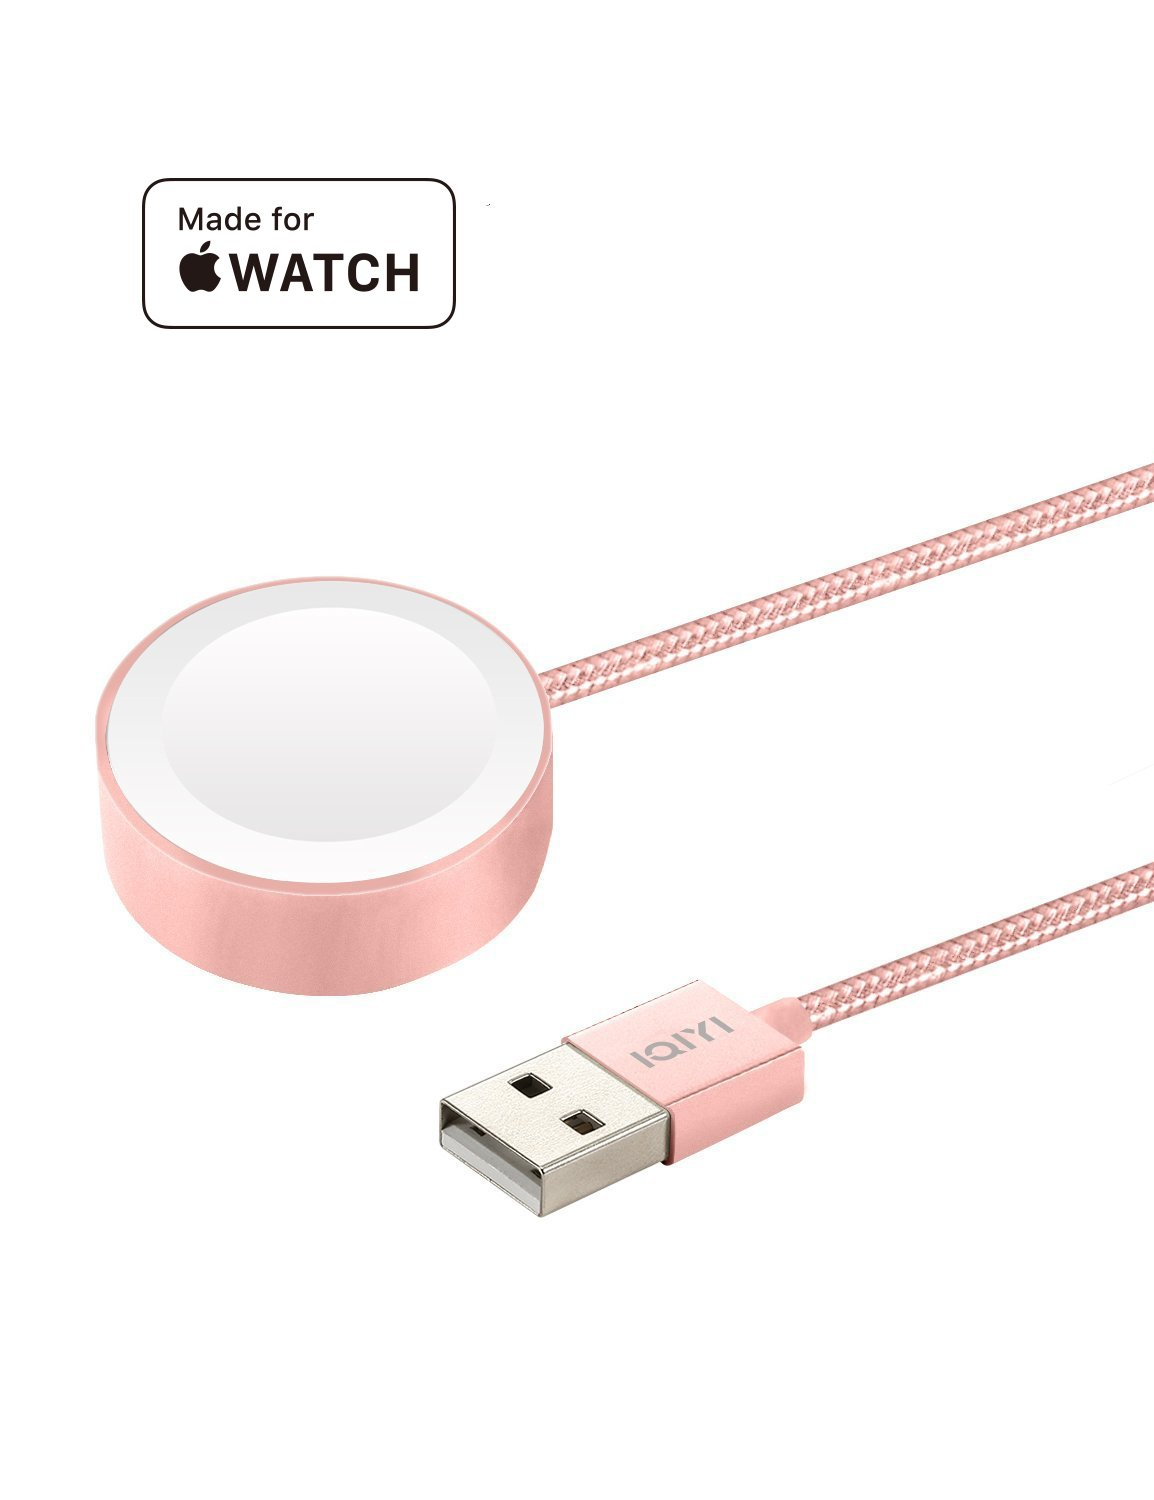 IQIYI [MFi Certified Apple Watch Charger, 3.3ft(1M) Nylon Braided Magnetic Charging Iwatch Cable Cord Scratch Resistant for Apple Watch/iWatch Series 1/2/3 (38mm & 42mm), Portable Charger Rose Gold